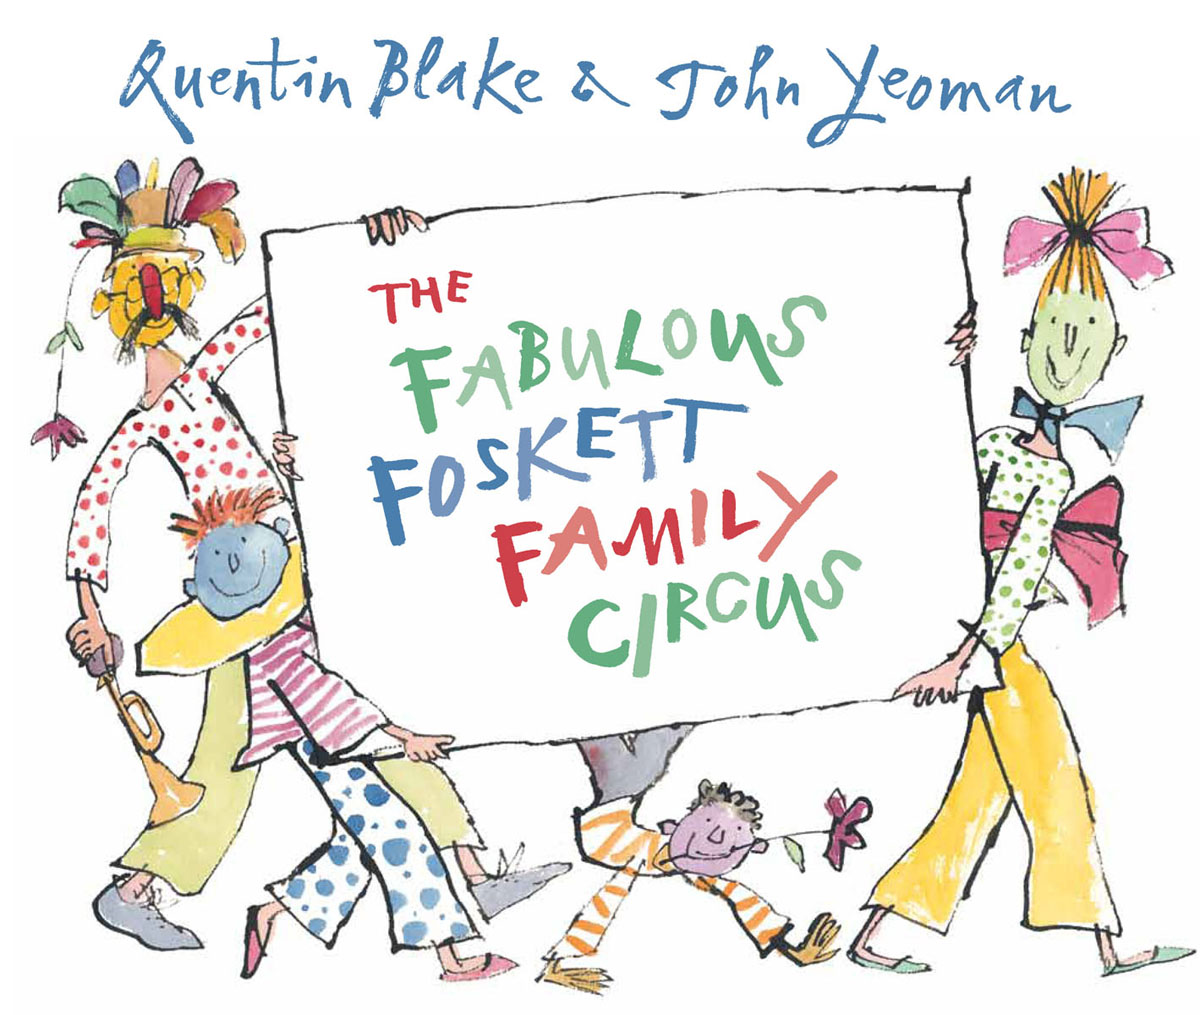 The Fabulous Foskett Family Circus 20 ways to draw a dress and 44 other fabulous fashions and accessories